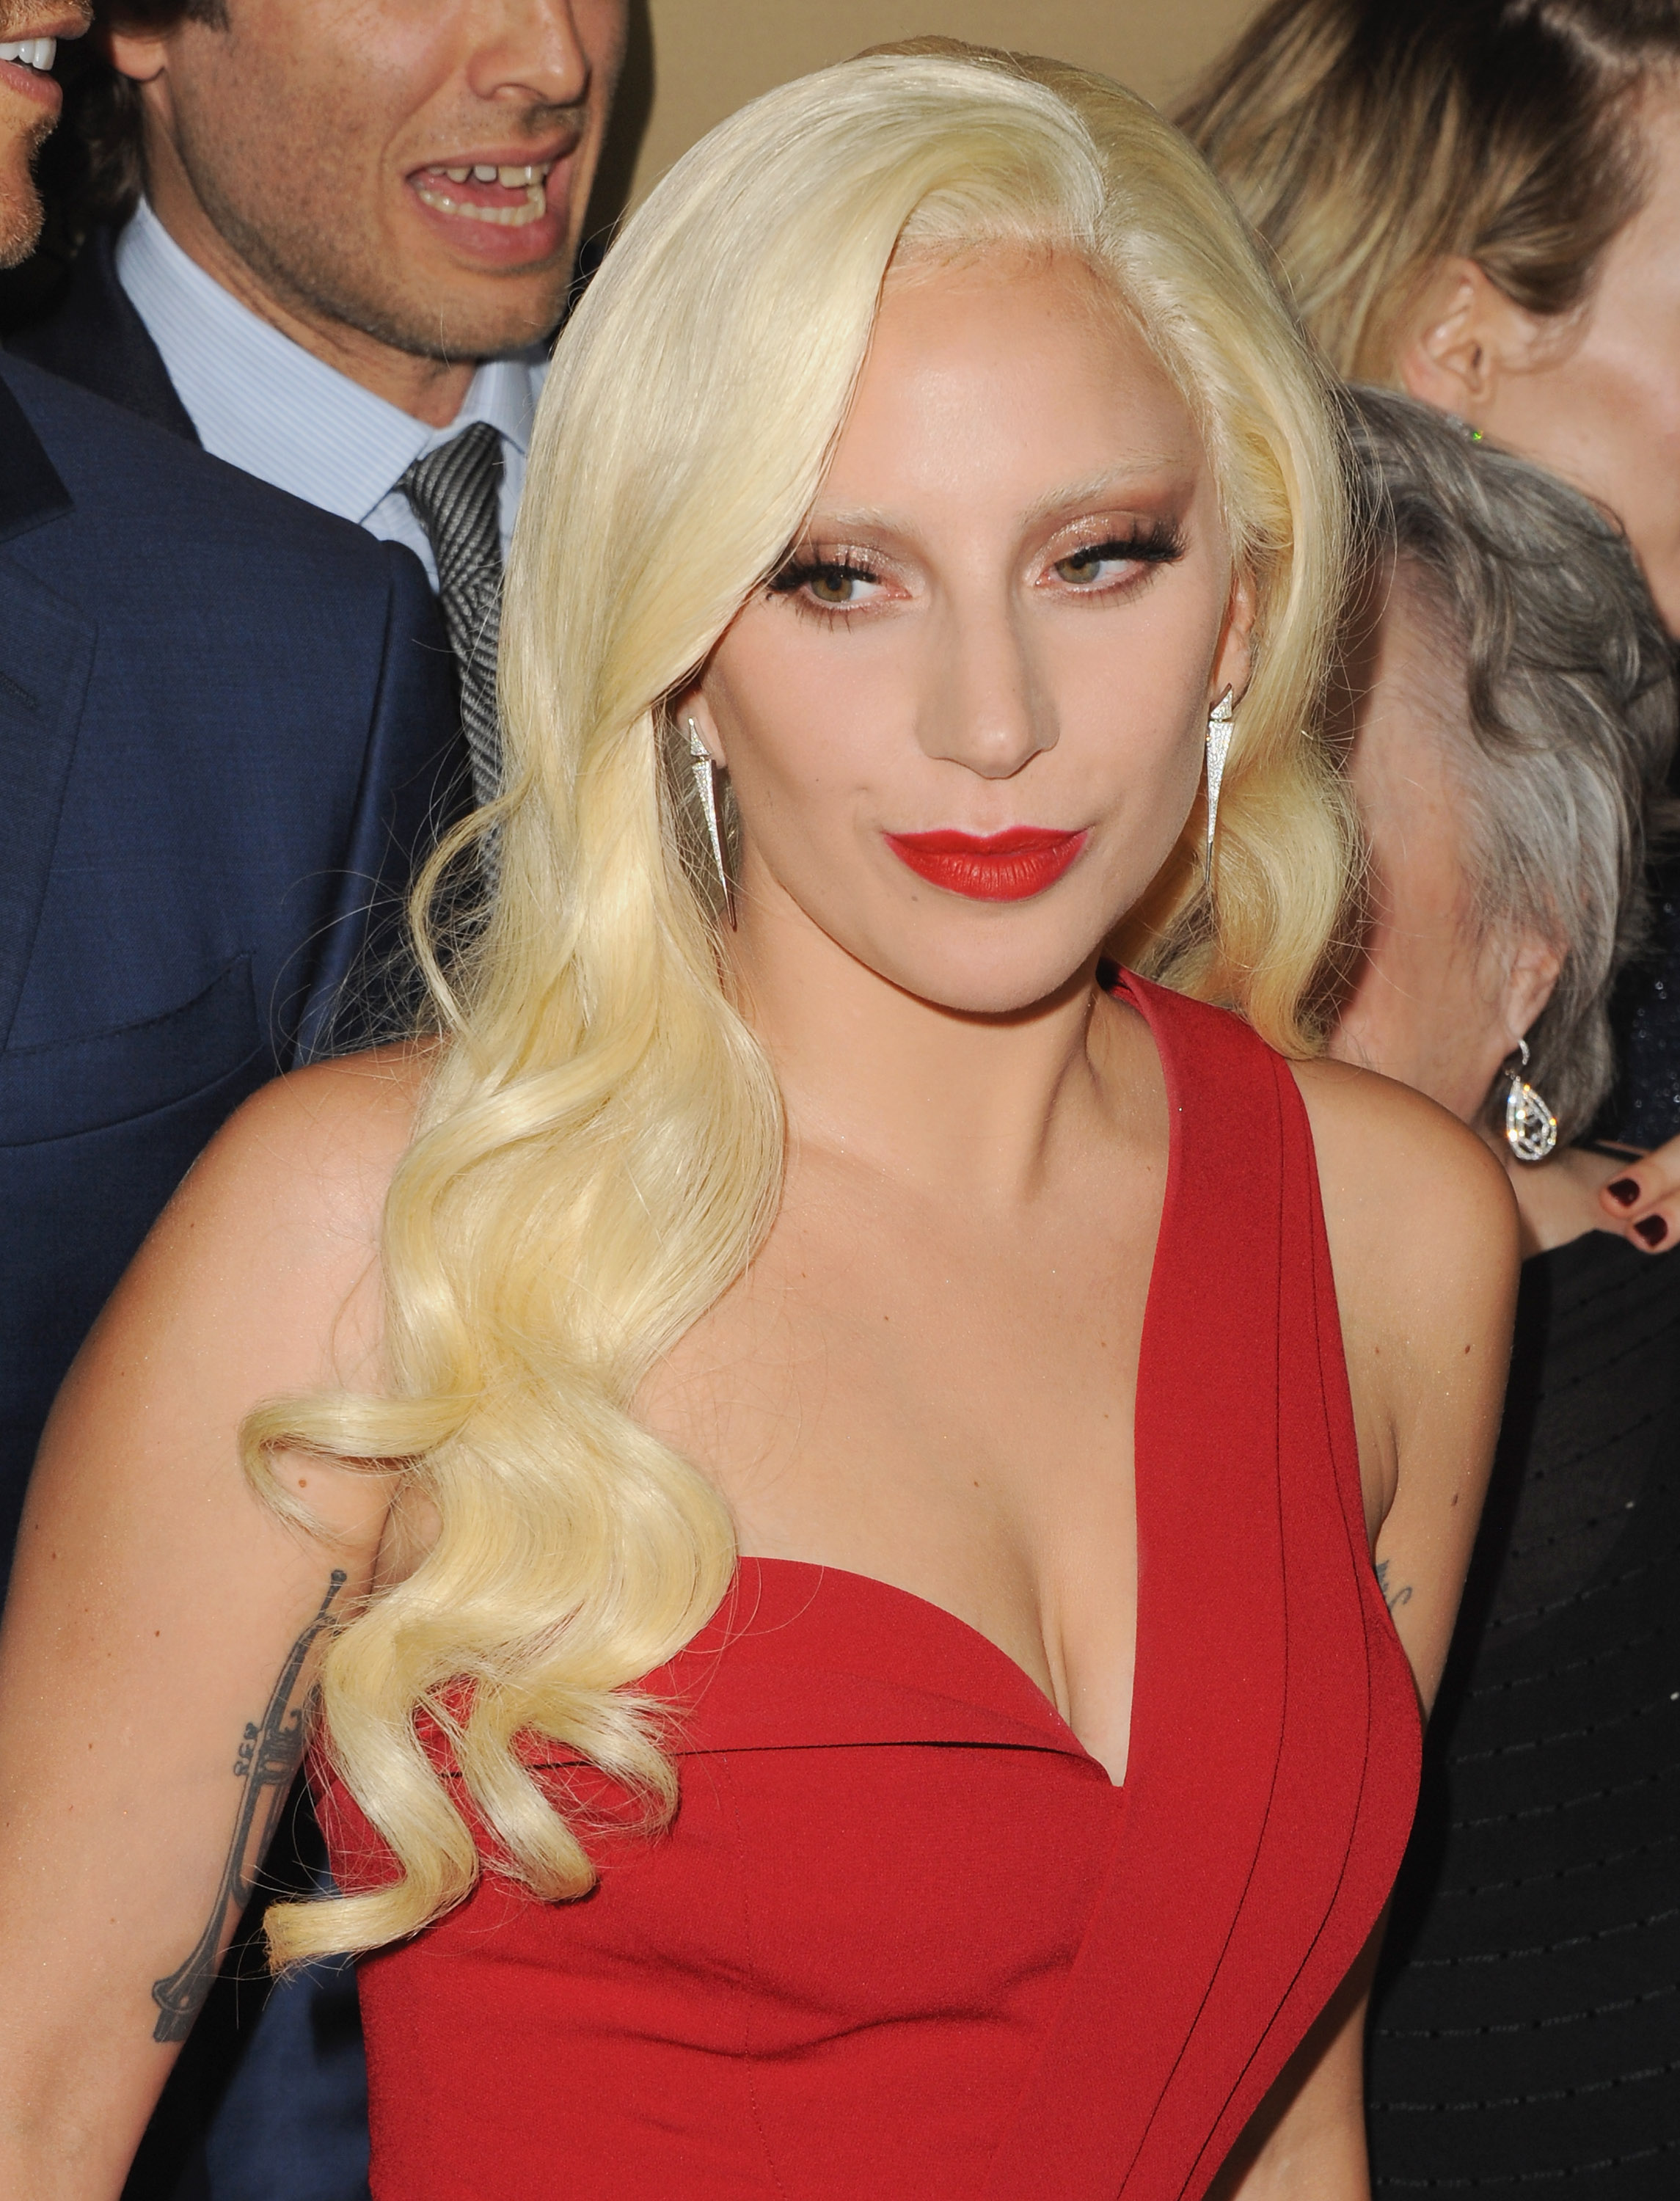 Lady Gaga at the Premiere Screening Of FX's American Horror Story: Hotel  on Oct. 3, 2015 in Los Angeles.